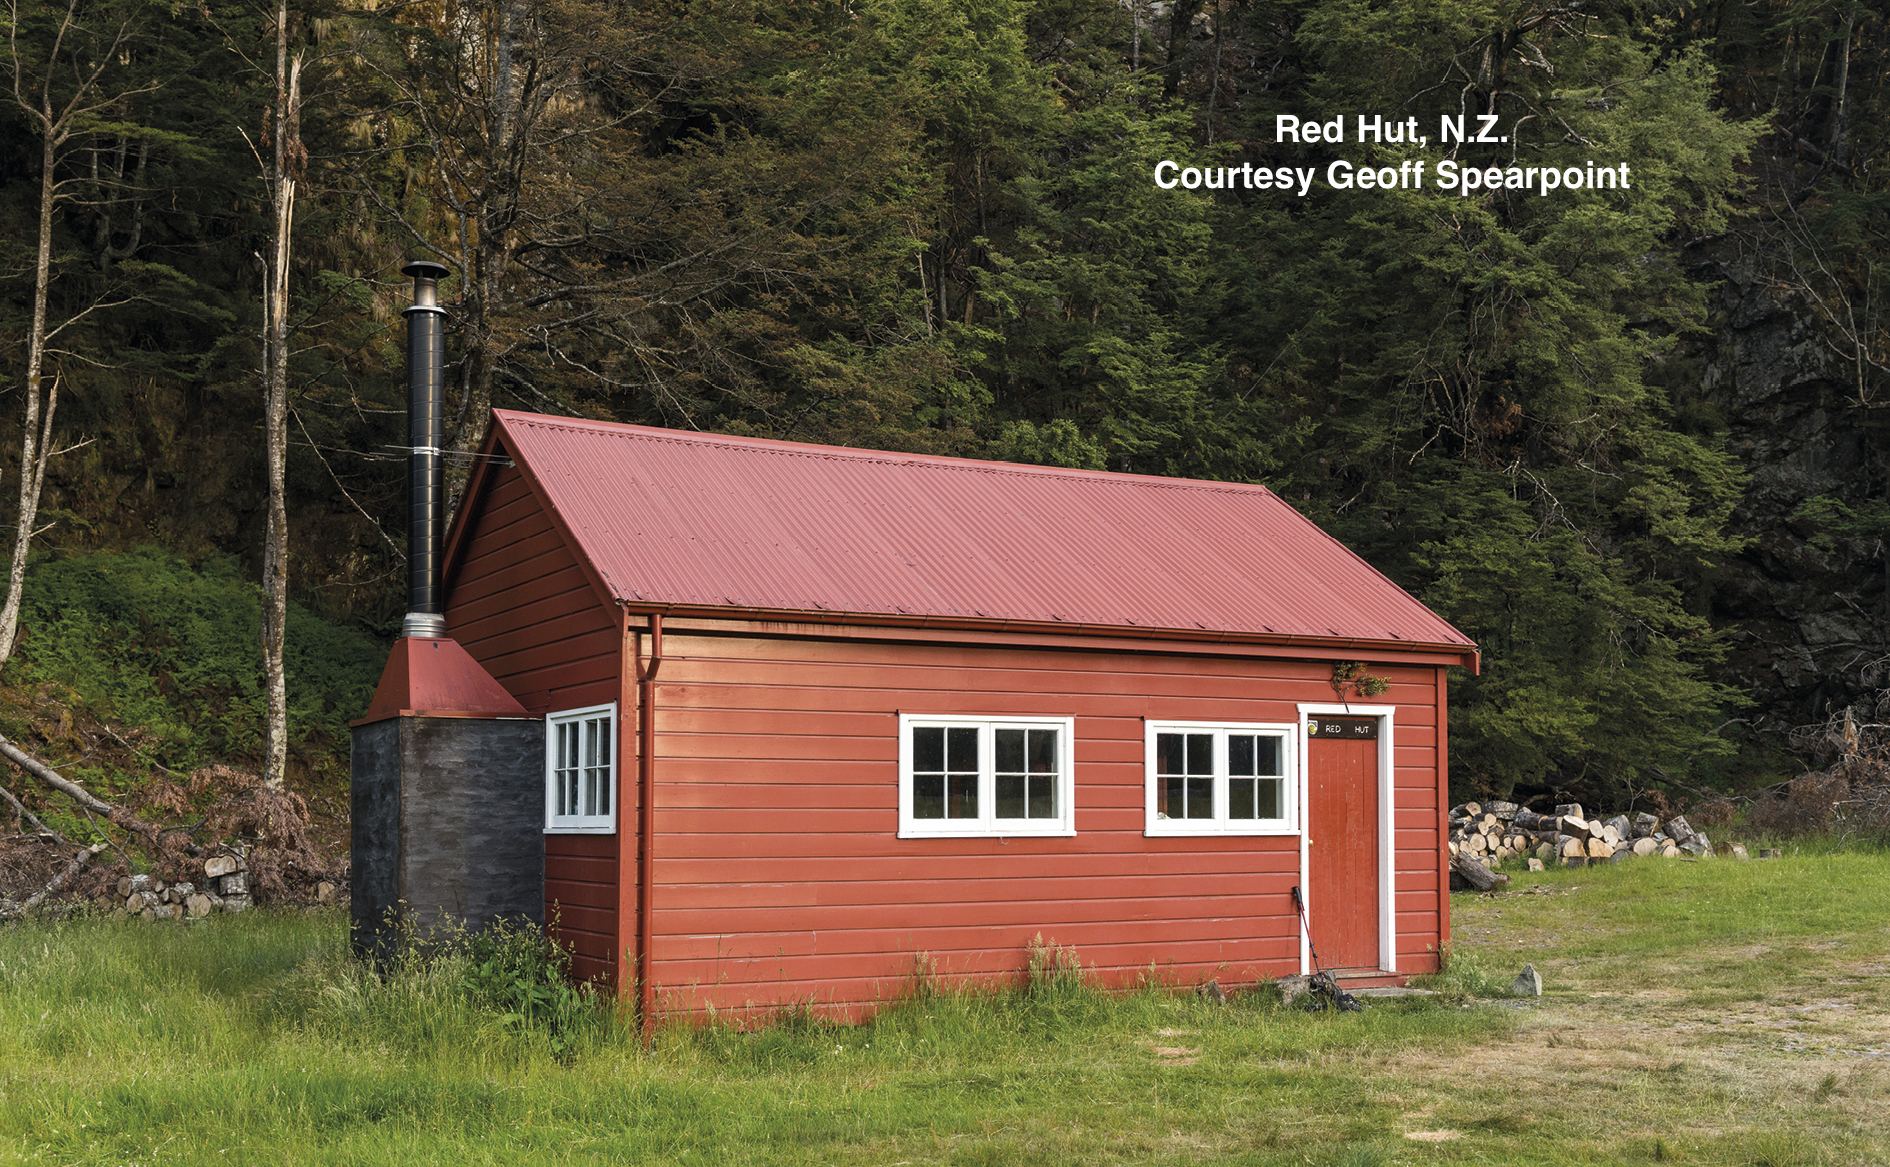 Red Hut, built by Rodolf Wigley, tourism pioneer and entrepreneur, c. 1916